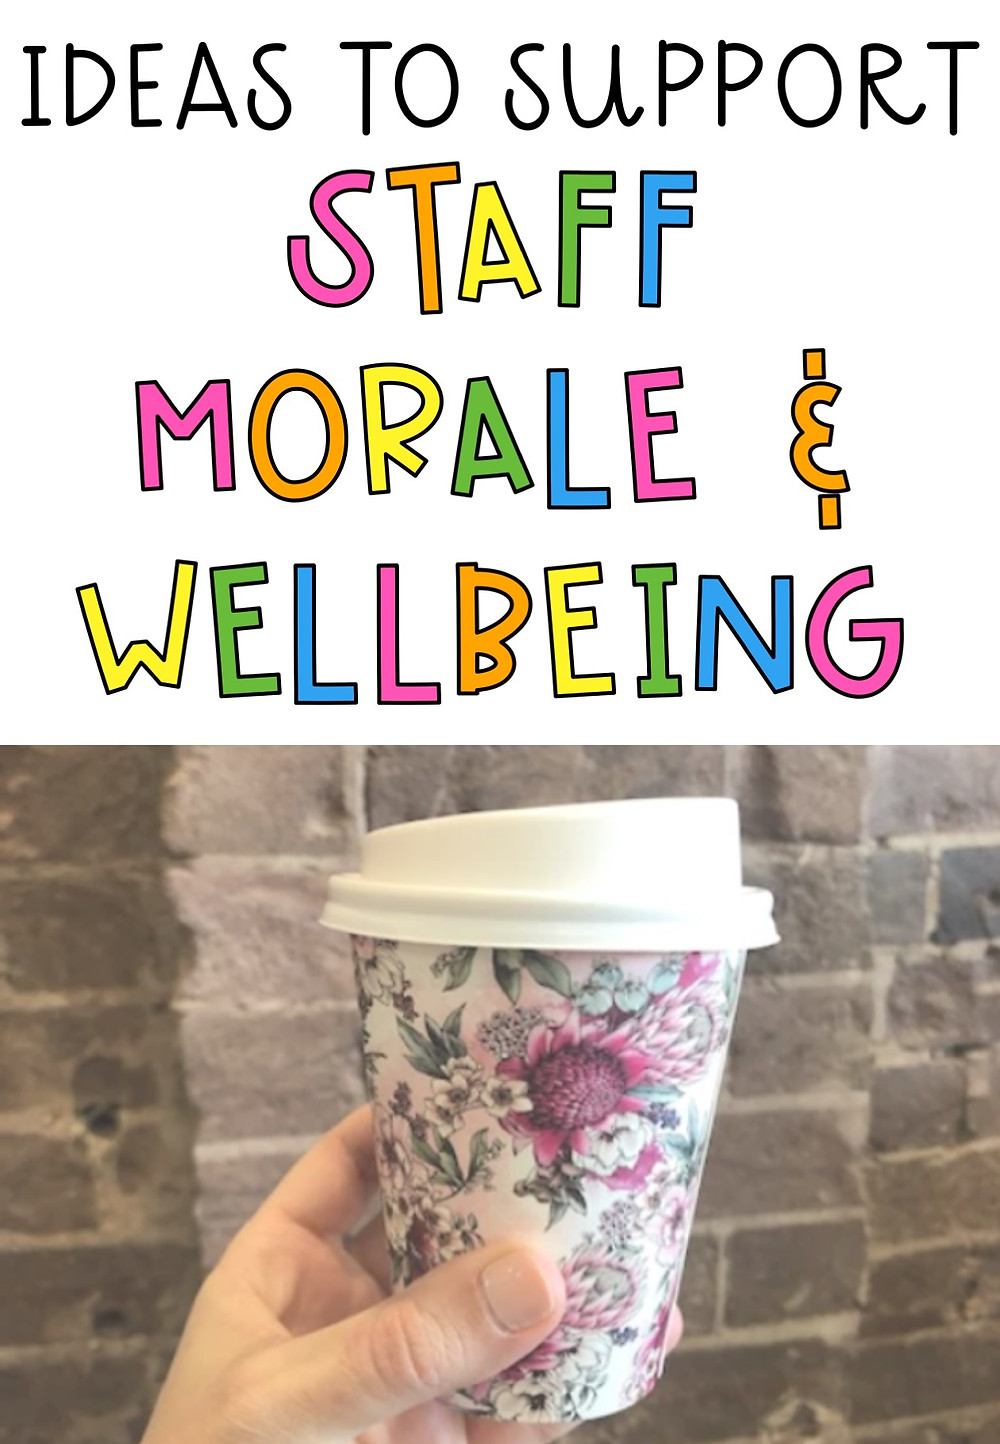 Ideas to support staff morale and wellbeing pin